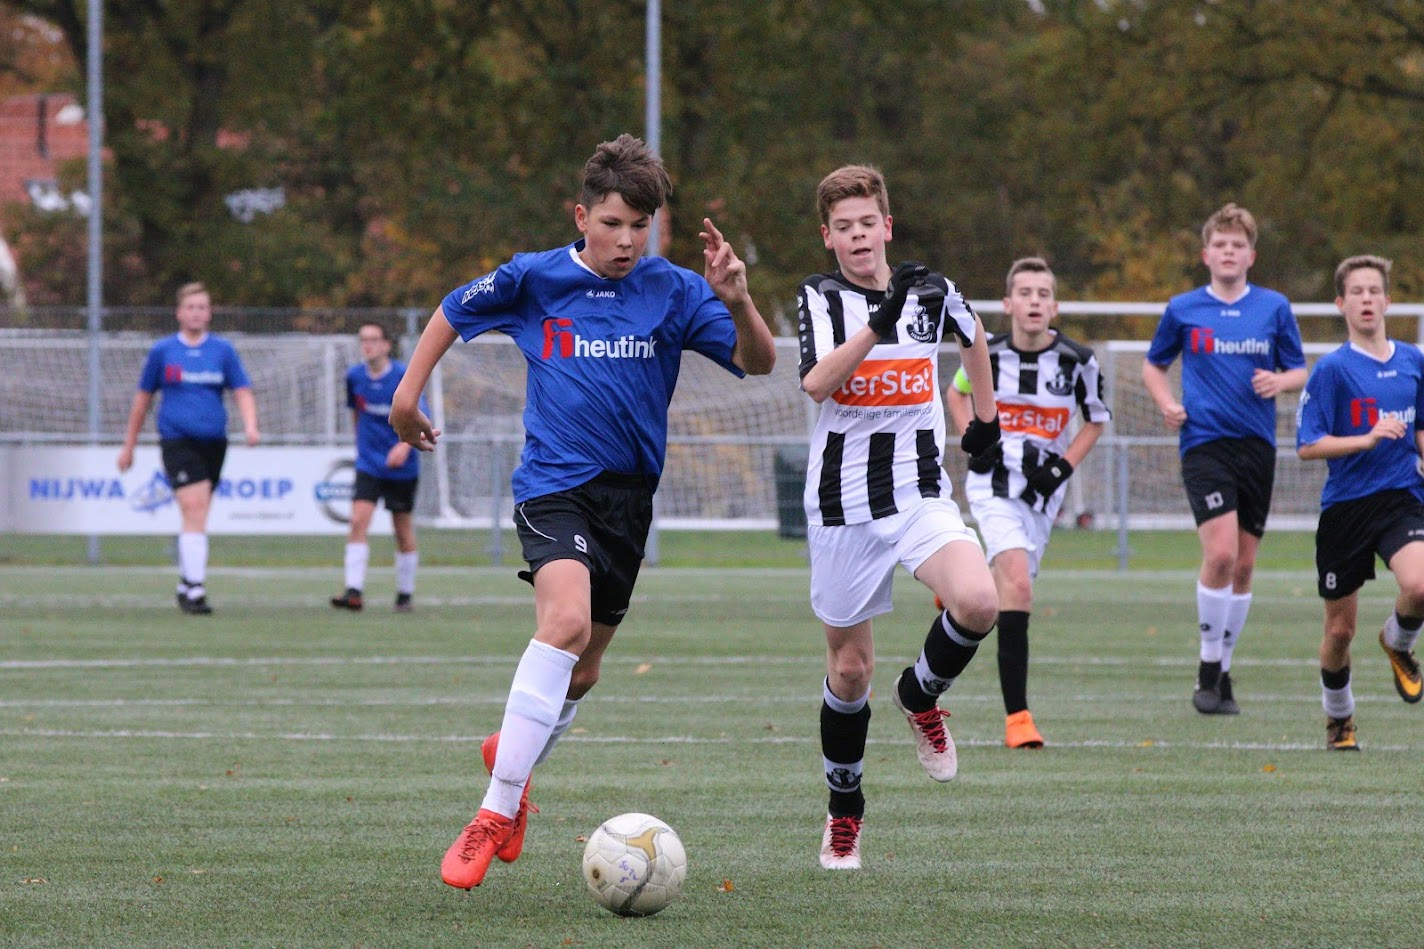 fefbef1ef05 Foto's SVZW JO15-3 – avc Heracles JO15-3 | 6-1 | 10-11-2018 | SVZW